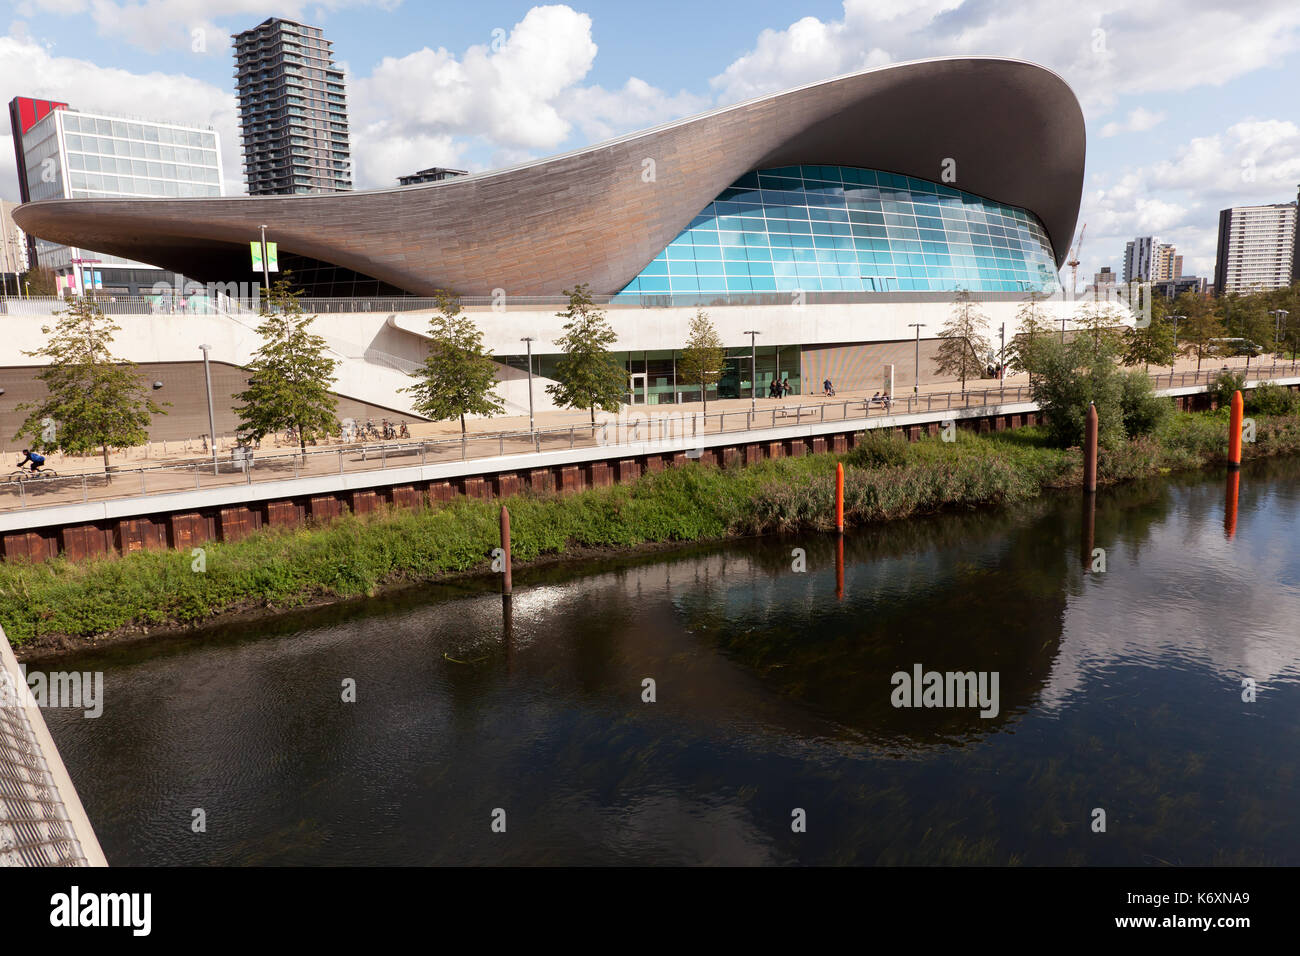 London swimming pool stock photos london swimming pool - Queen elizabeth olympic park swimming pool ...